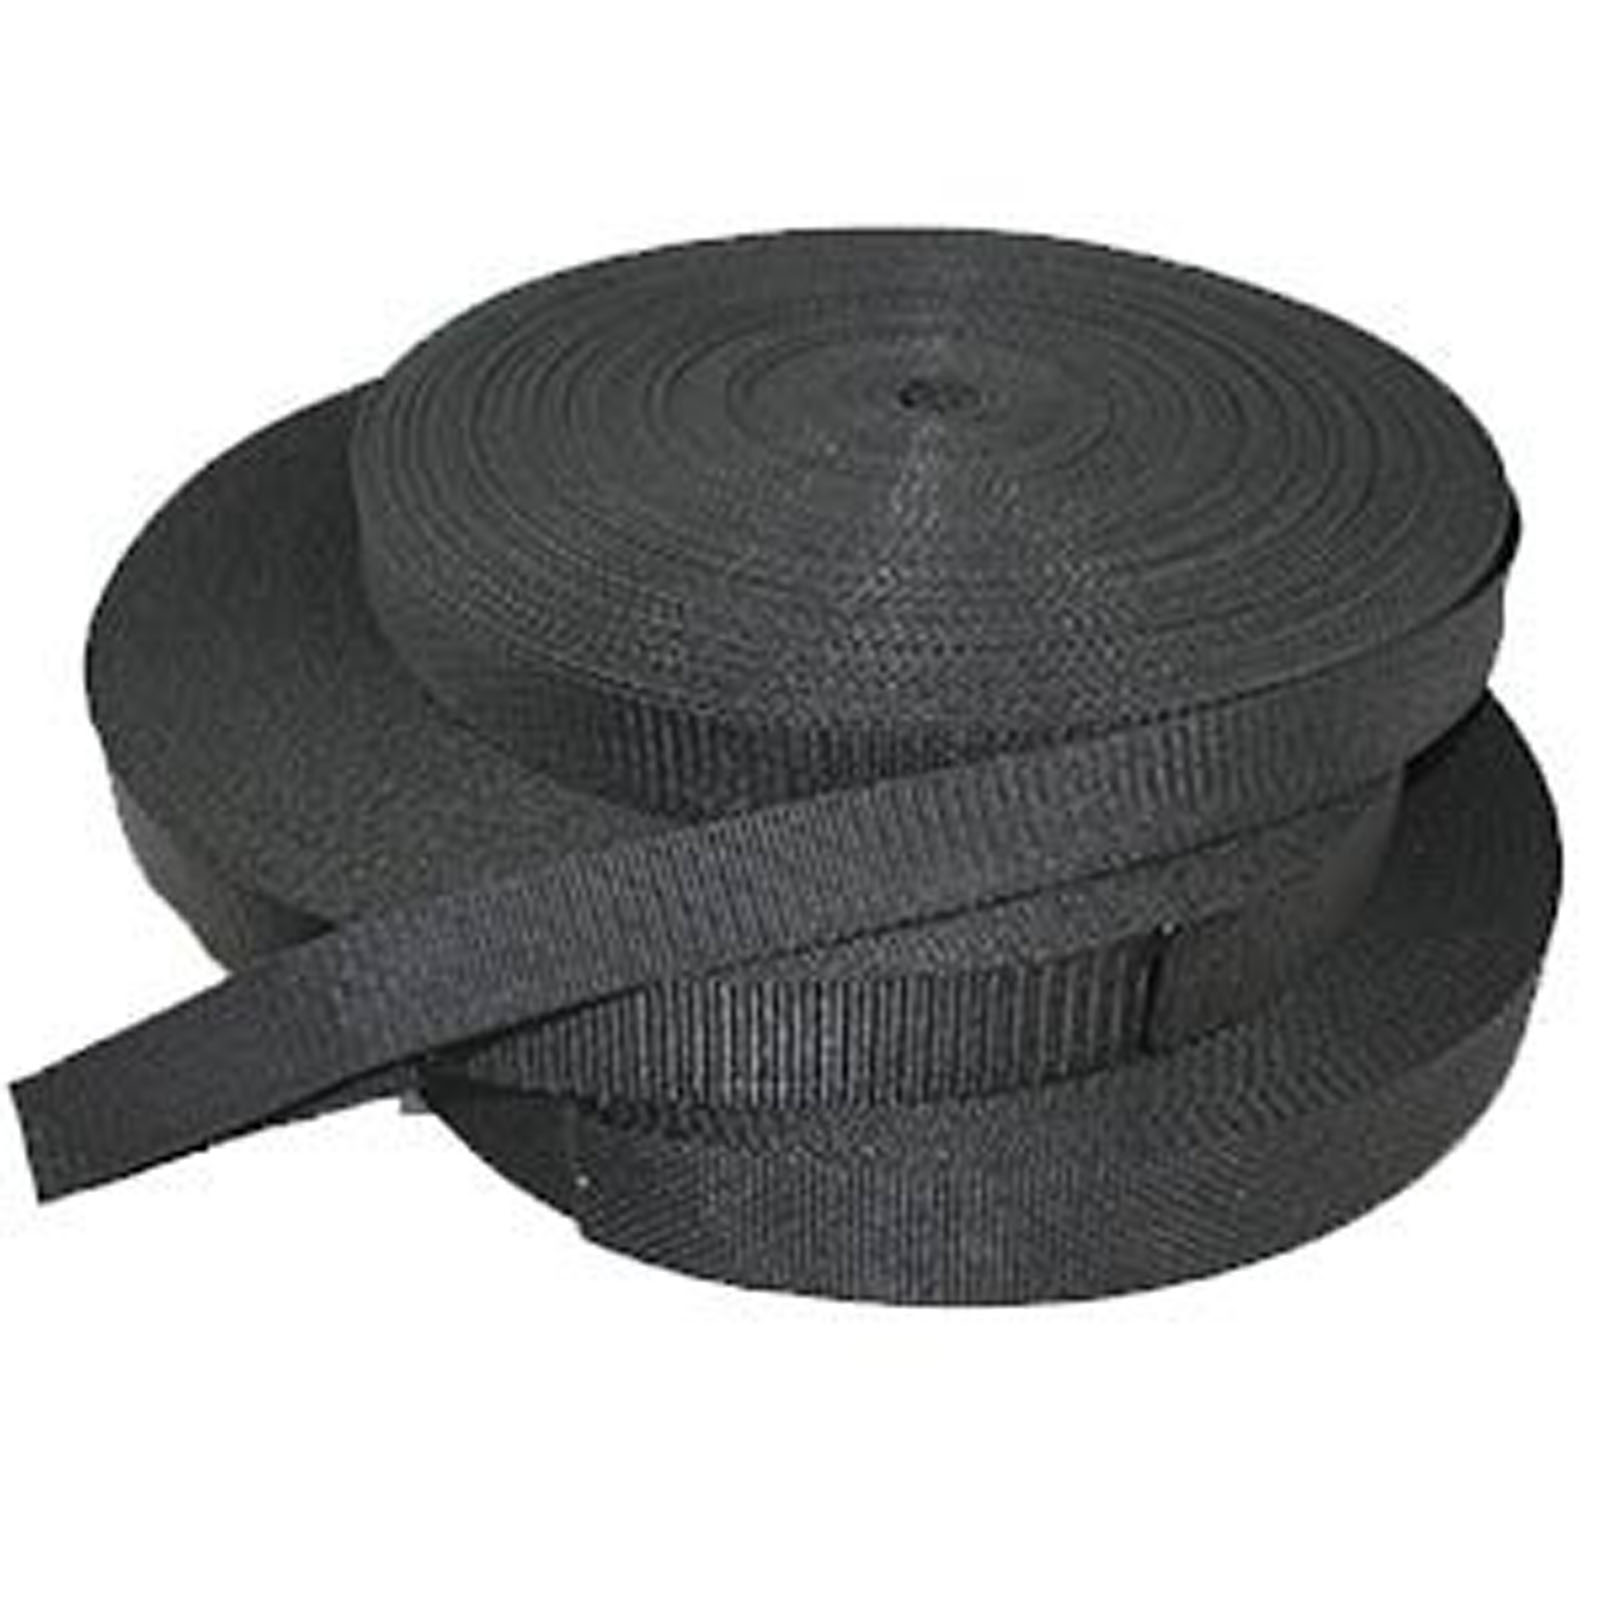 50mm-WEBBING-BLACK